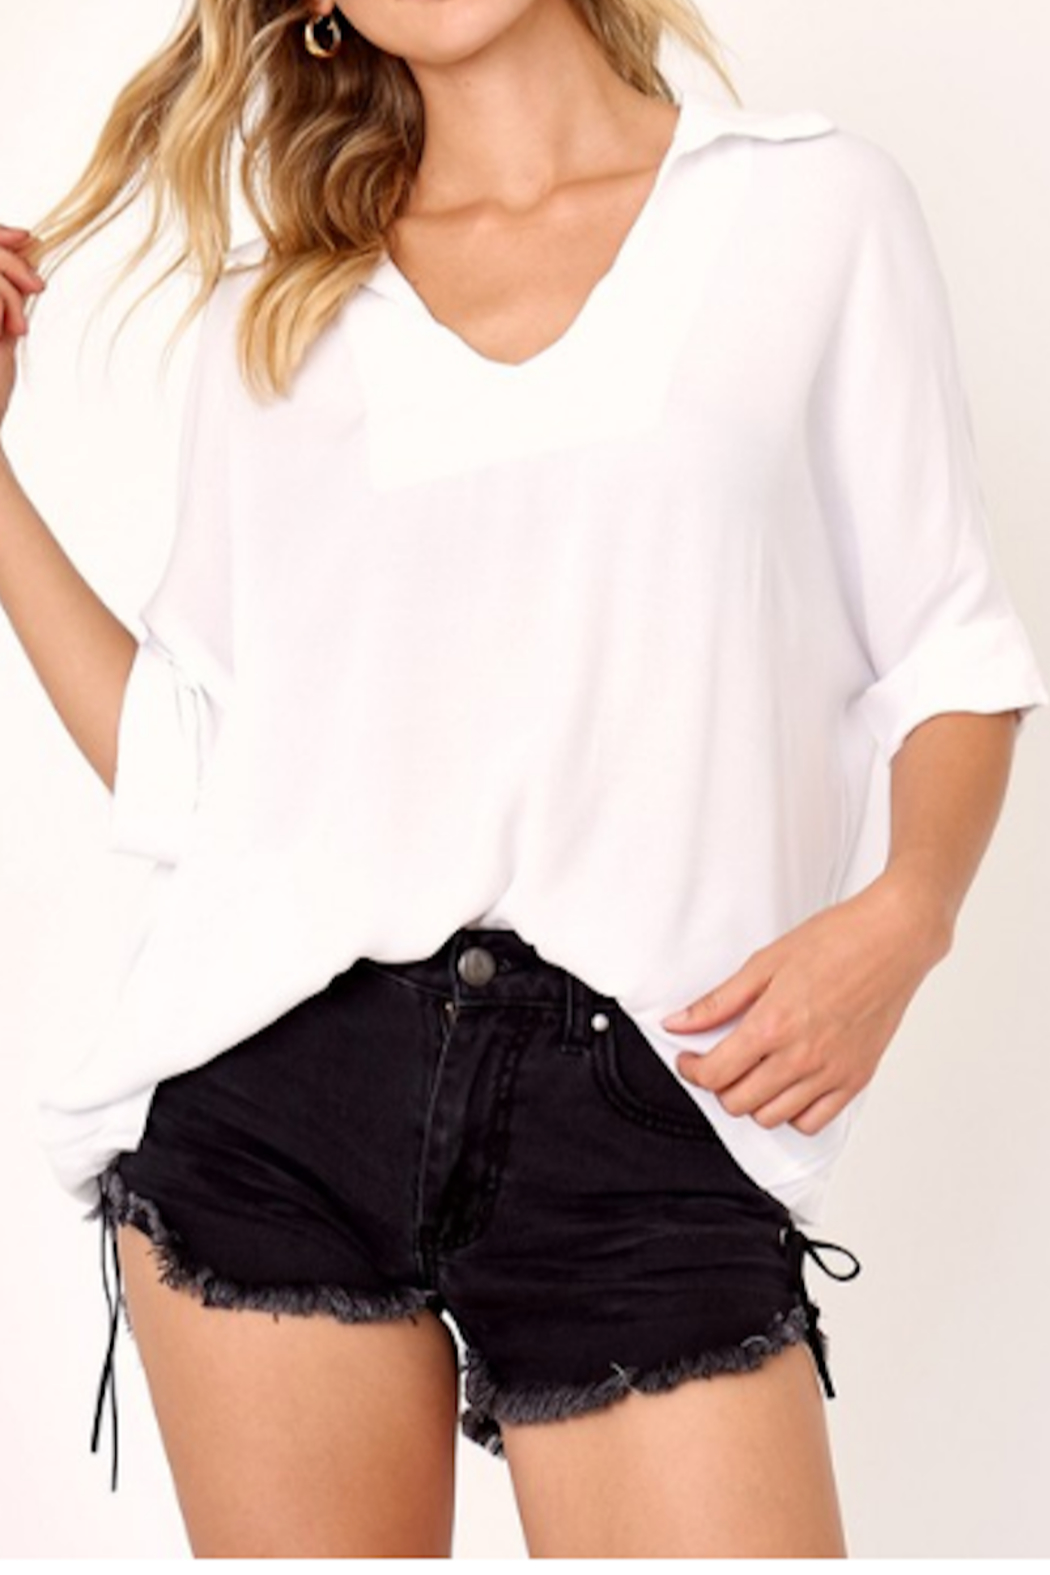 Olivaceous Bonny Relaxed Fit Blouse - Main Image